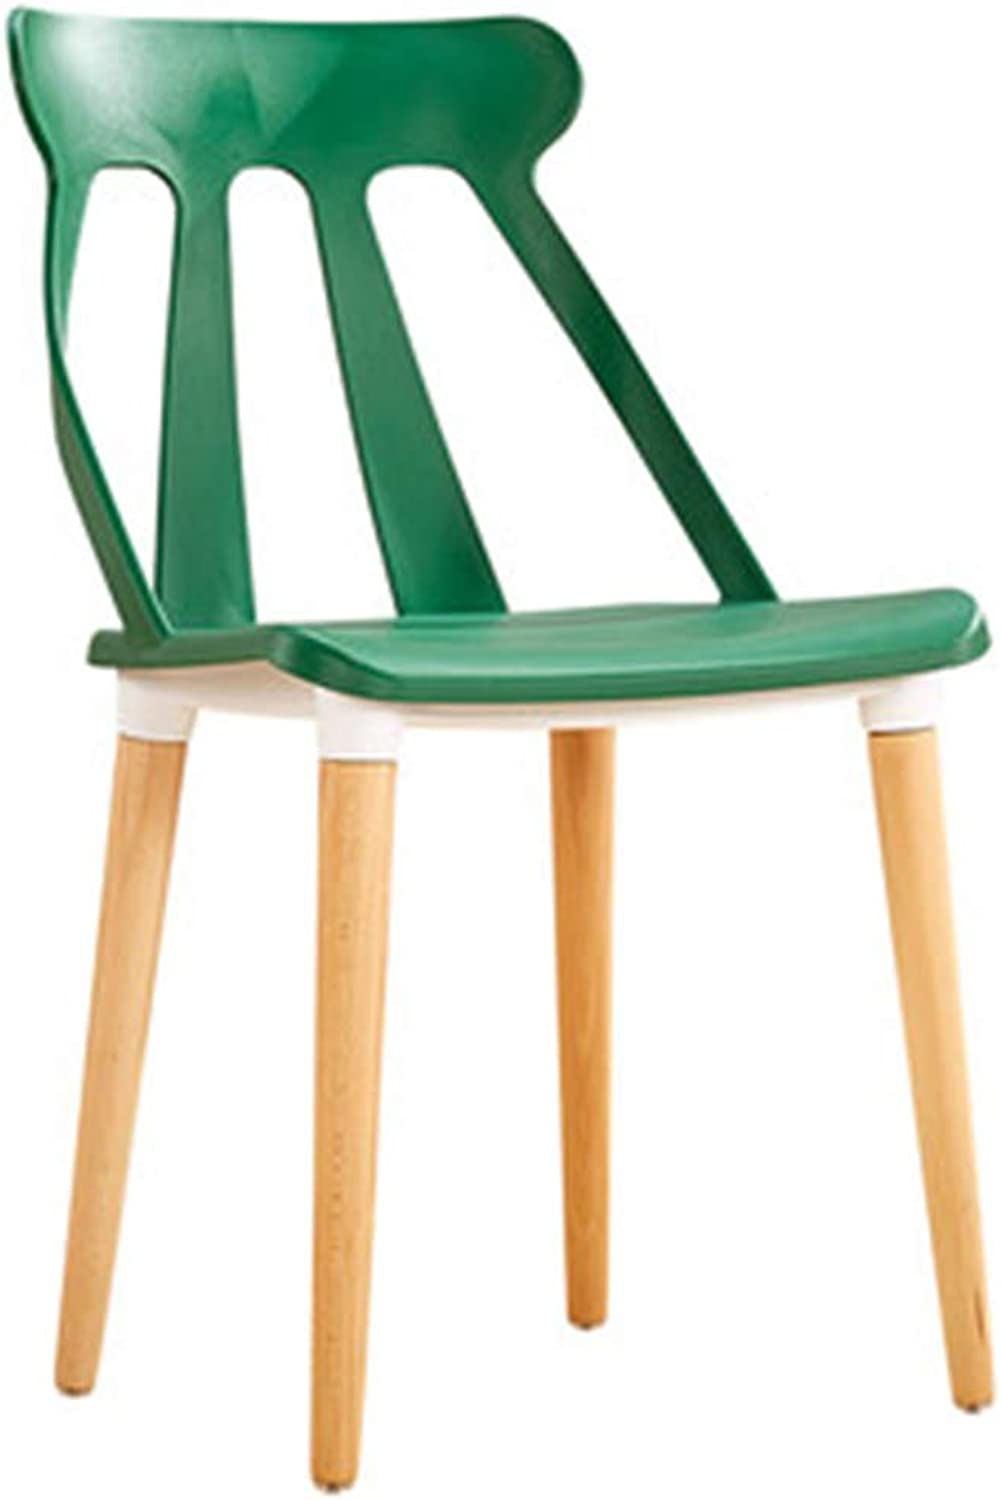 Chair Chair Modern Simplicity Easy Assembly Solid Wood Chair Legs Restaurant Study Room (color   Green)